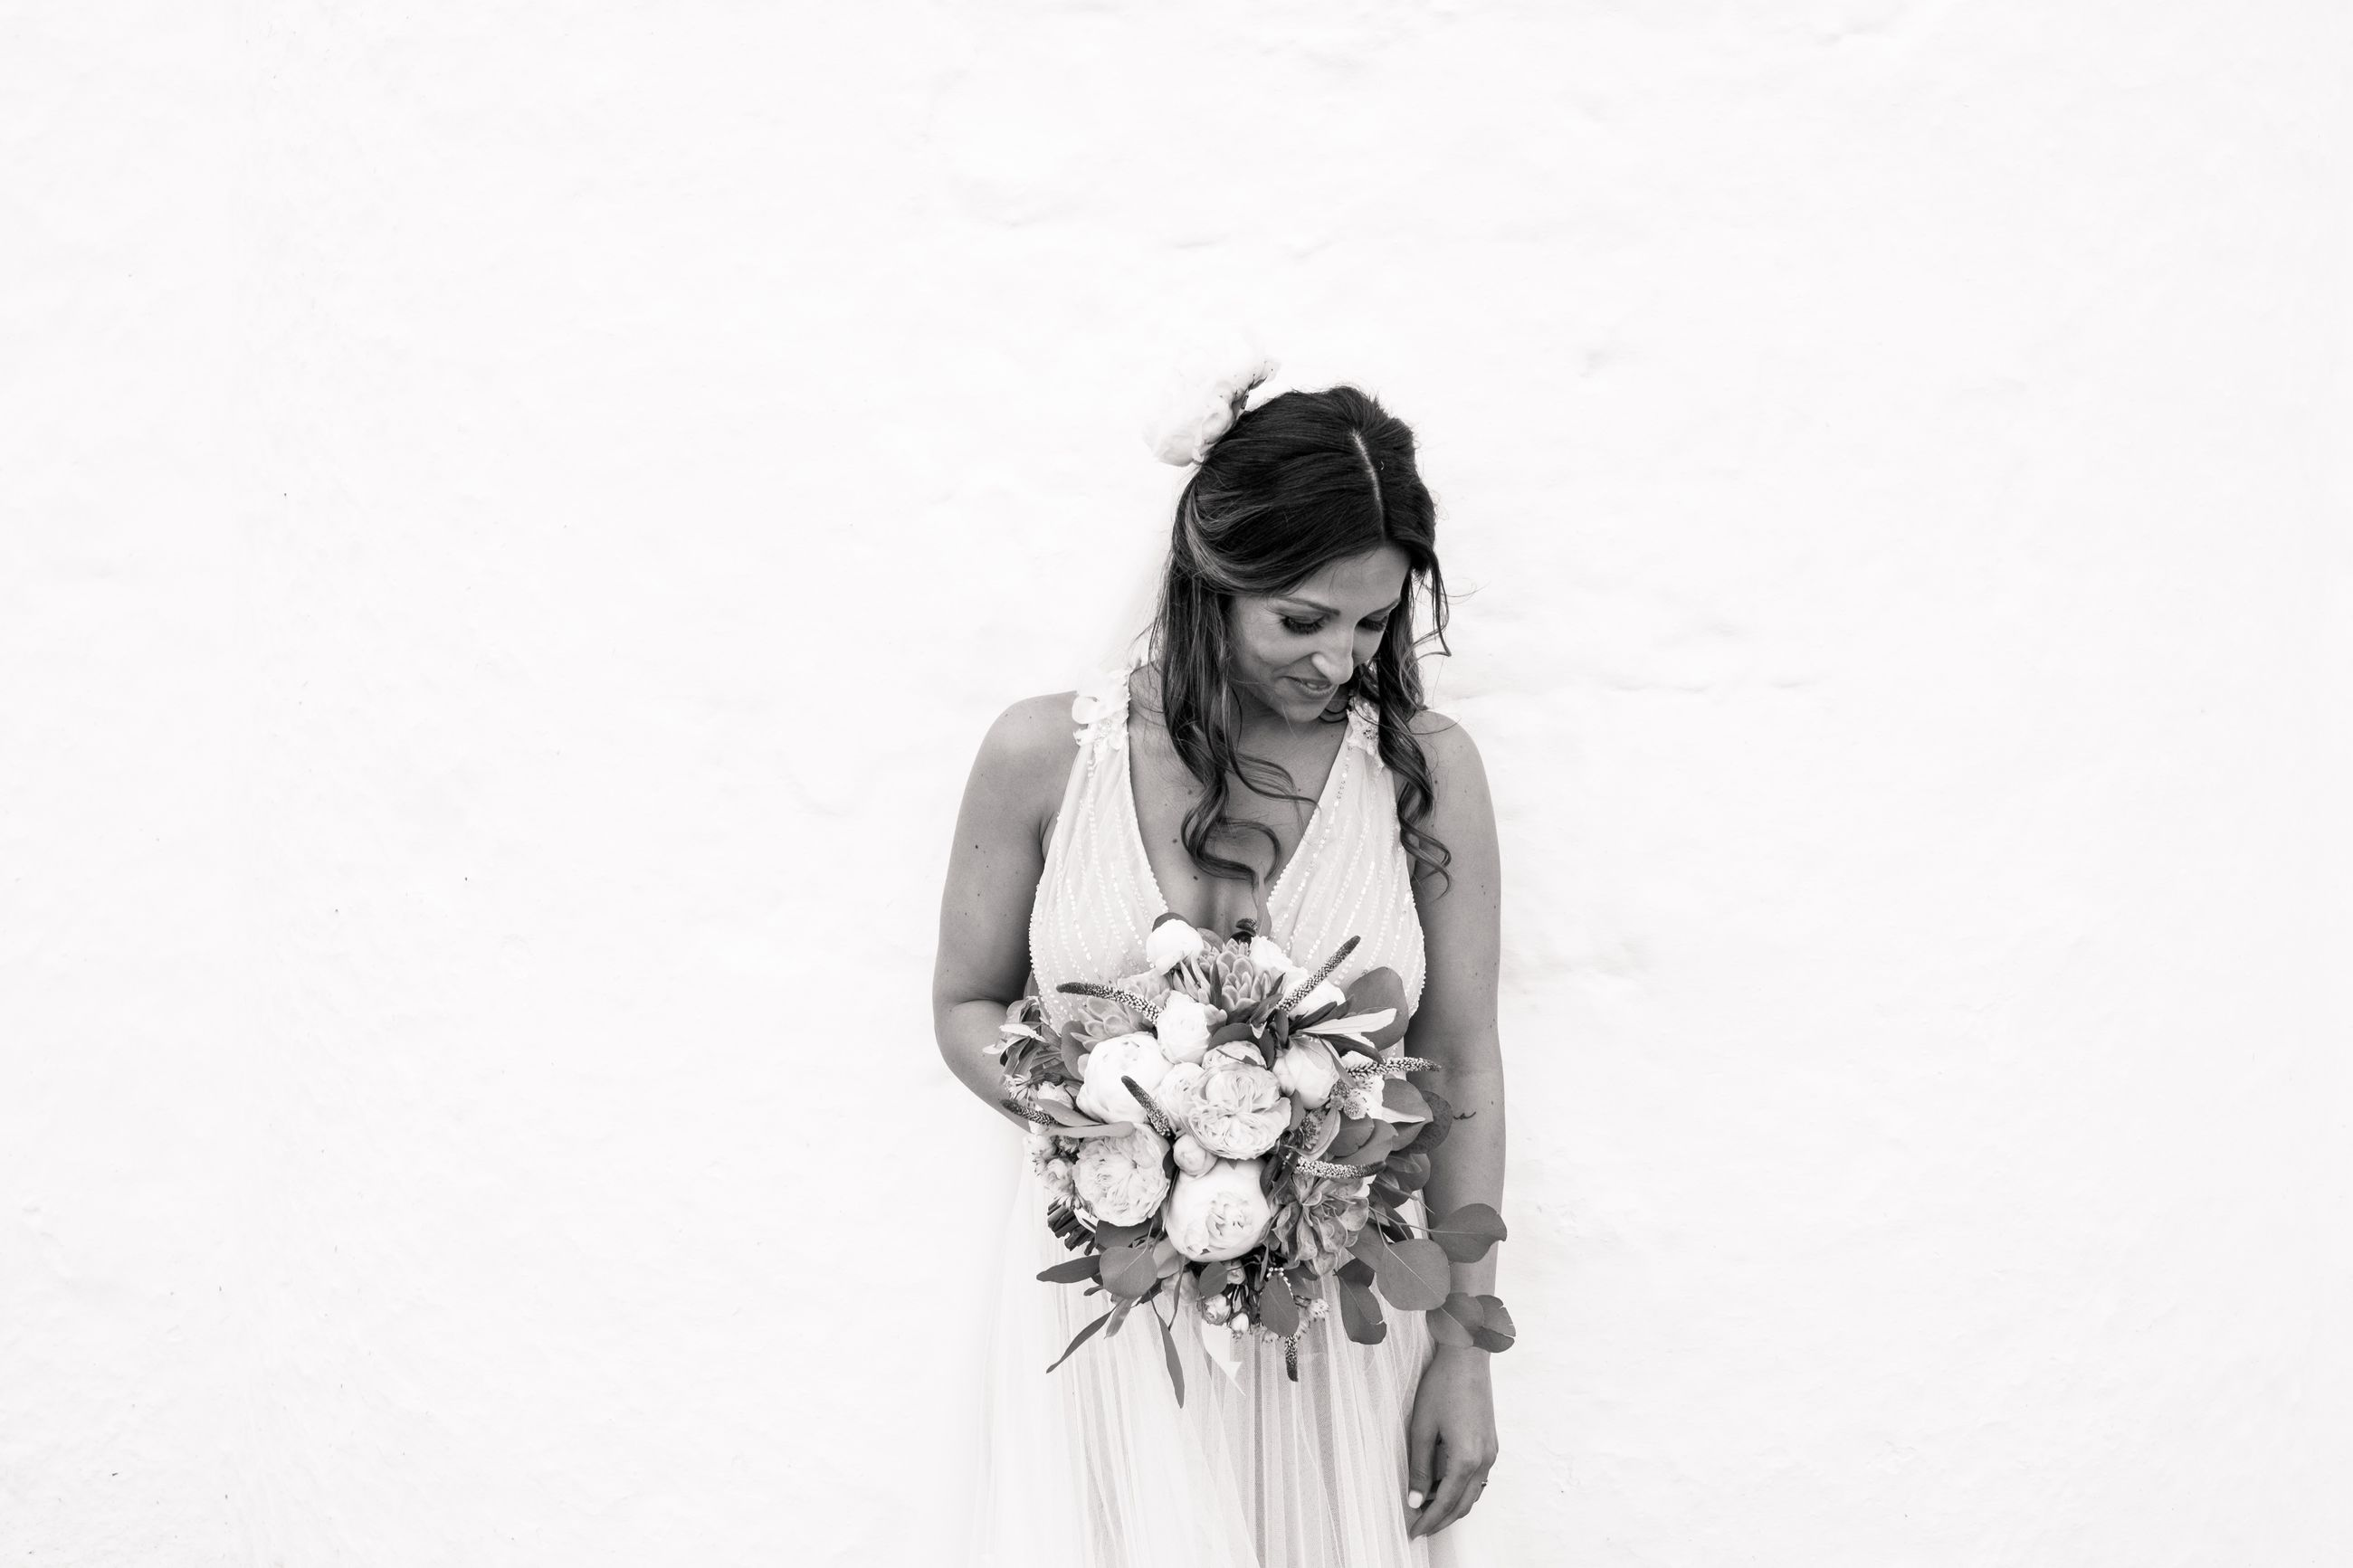 flower, flowering plant, one person, young adult, young women, plant, front view, copy space, women, standing, lifestyles, studio shot, leisure activity, beauty, nature, three quarter length, beauty in nature, indoors, beautiful woman, hairstyle, flower arrangement, flower head, teenager, bouquet